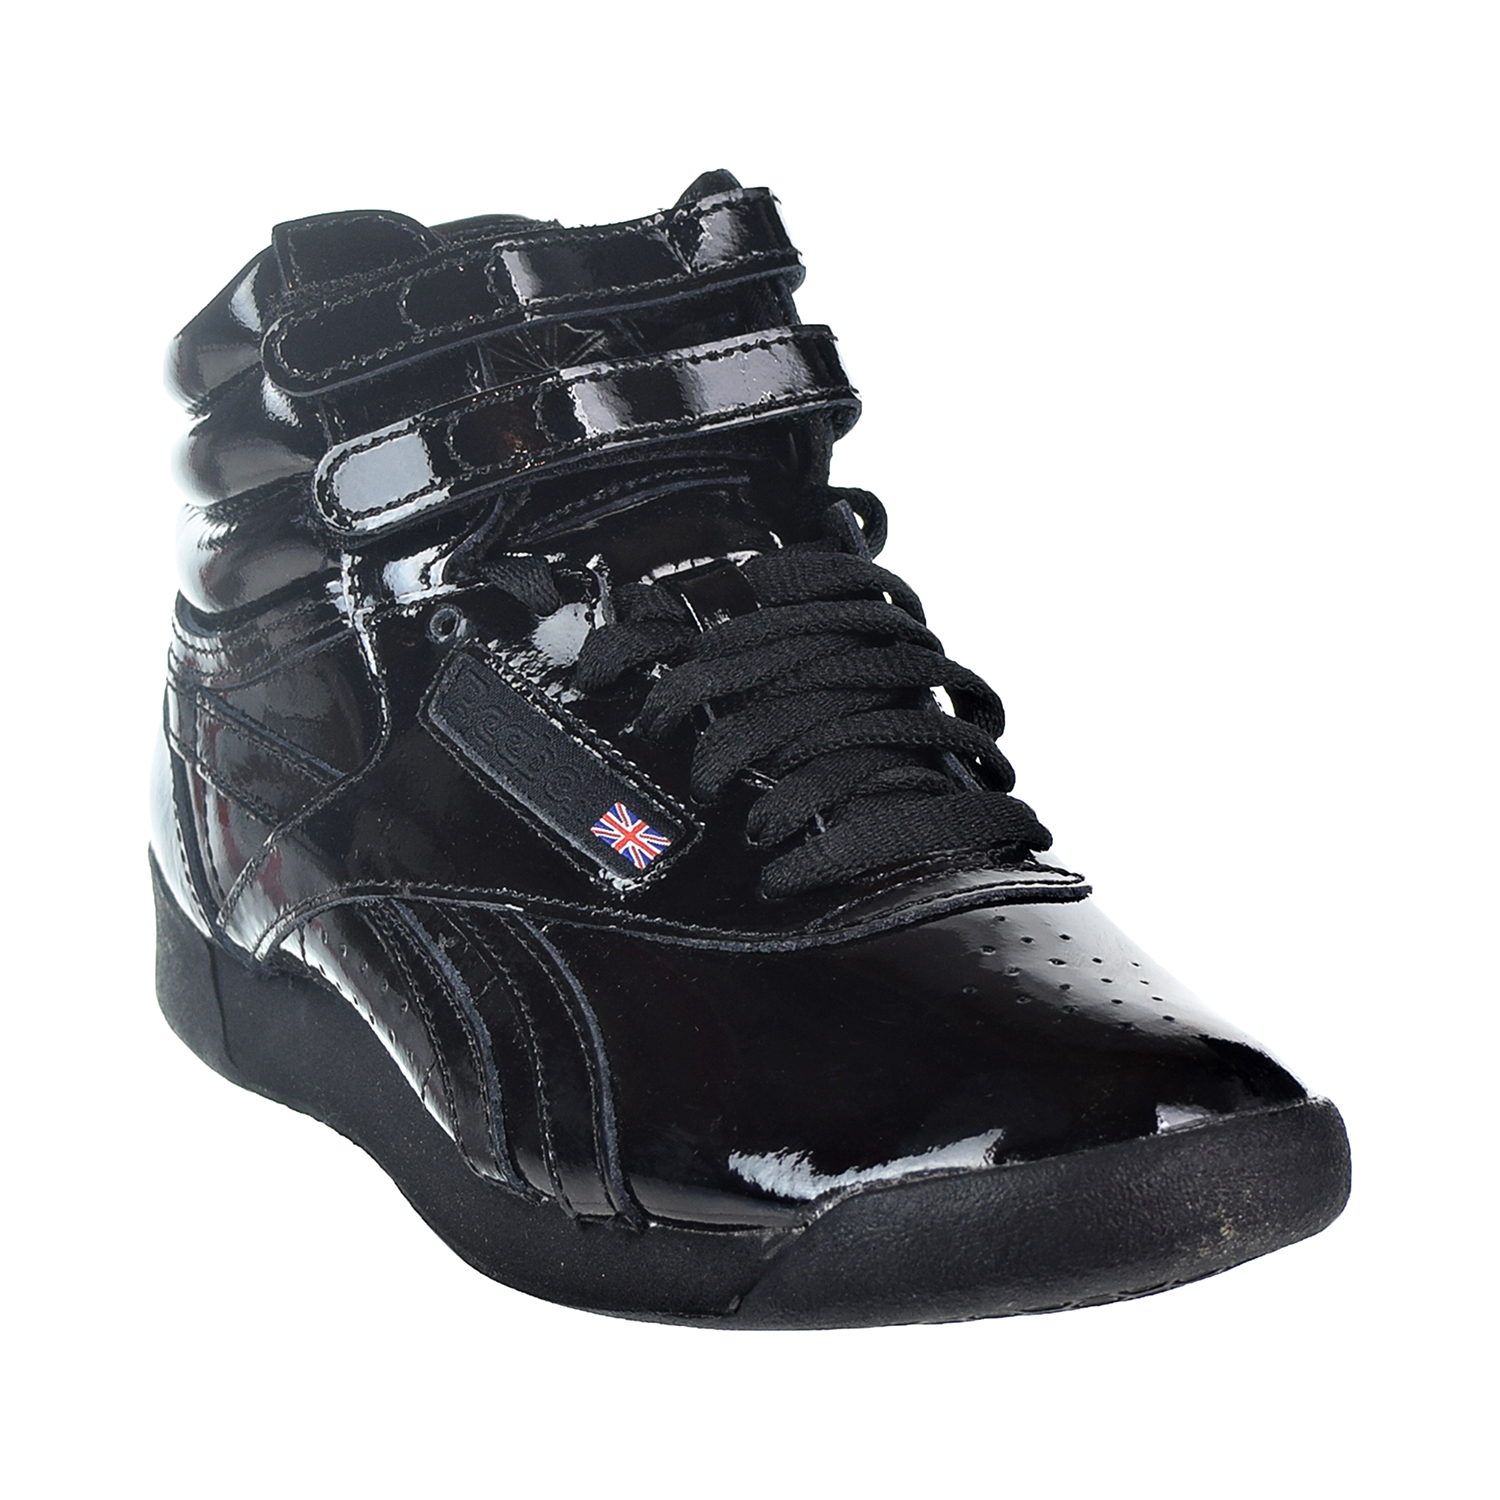 a1e56725845 Reebok Classic Freestyle Hi Patent Women s Shoes Black cn2822 - Walmart.com